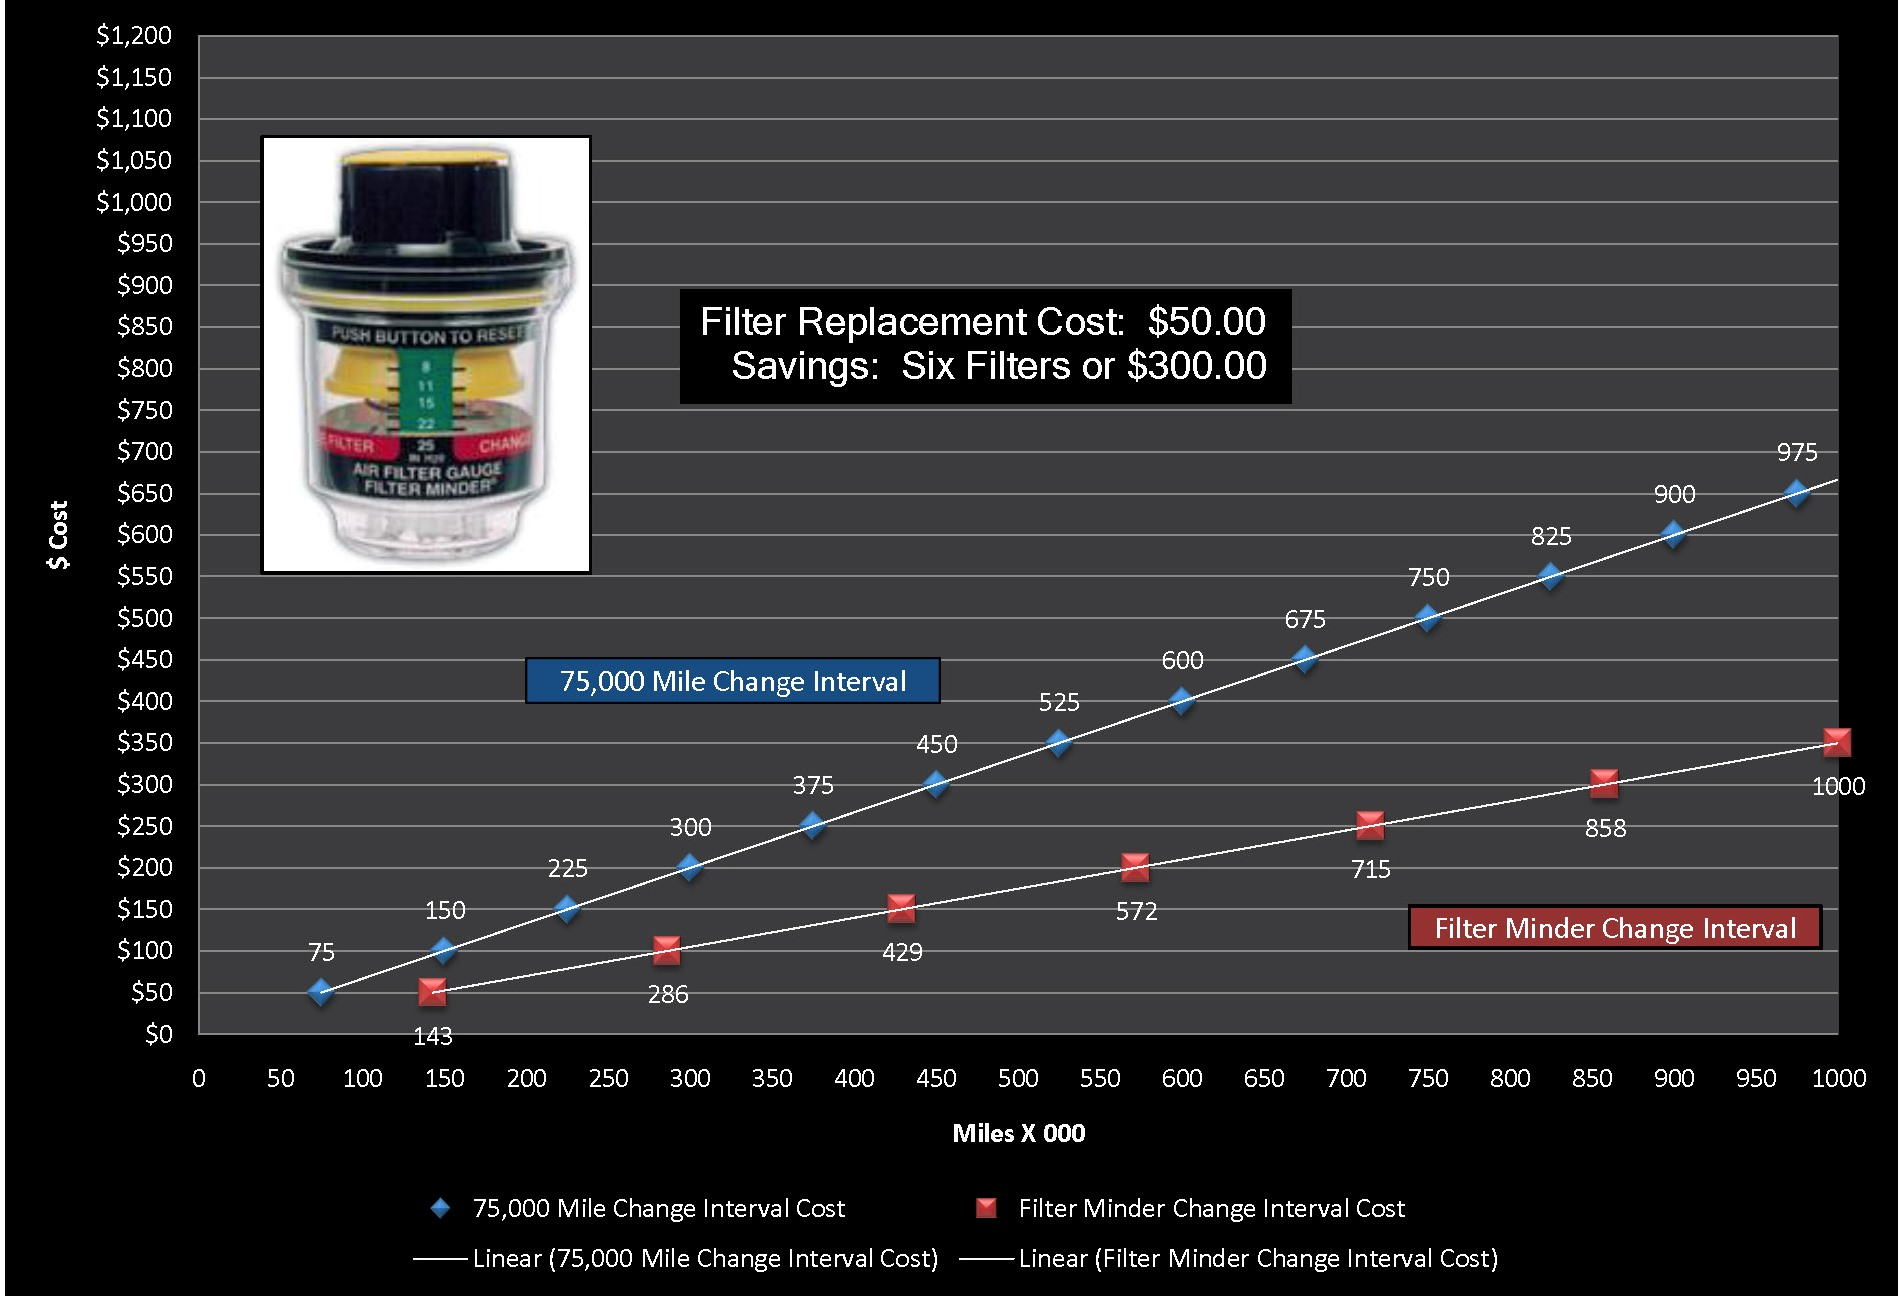 Filter Minder Cost Comparison Charts Dirty Fuel On Truck Click A Chart Below To See Full View Of The Between Replacing Time Mileage Or Looks Basis And